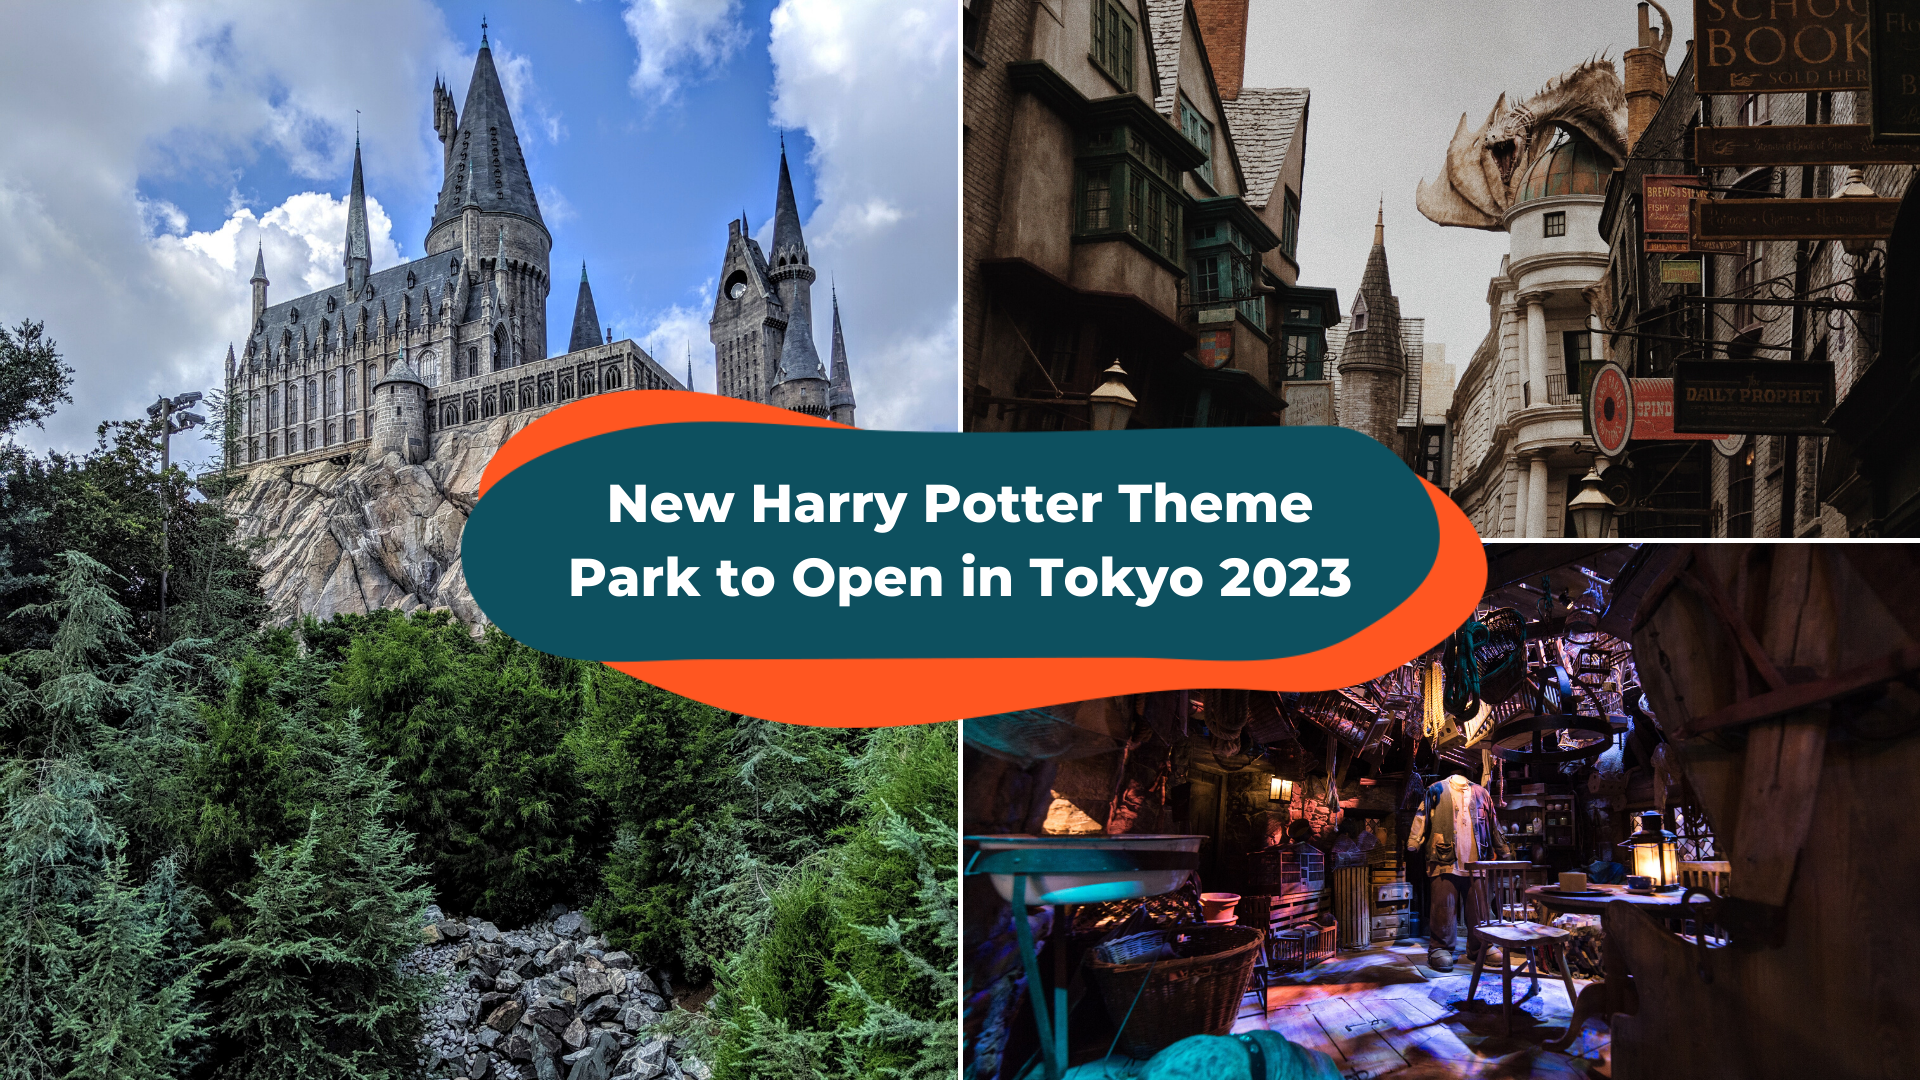 A New Harry Potter Theme Park Is Set To Open in Tokyo, Japan in 2023!